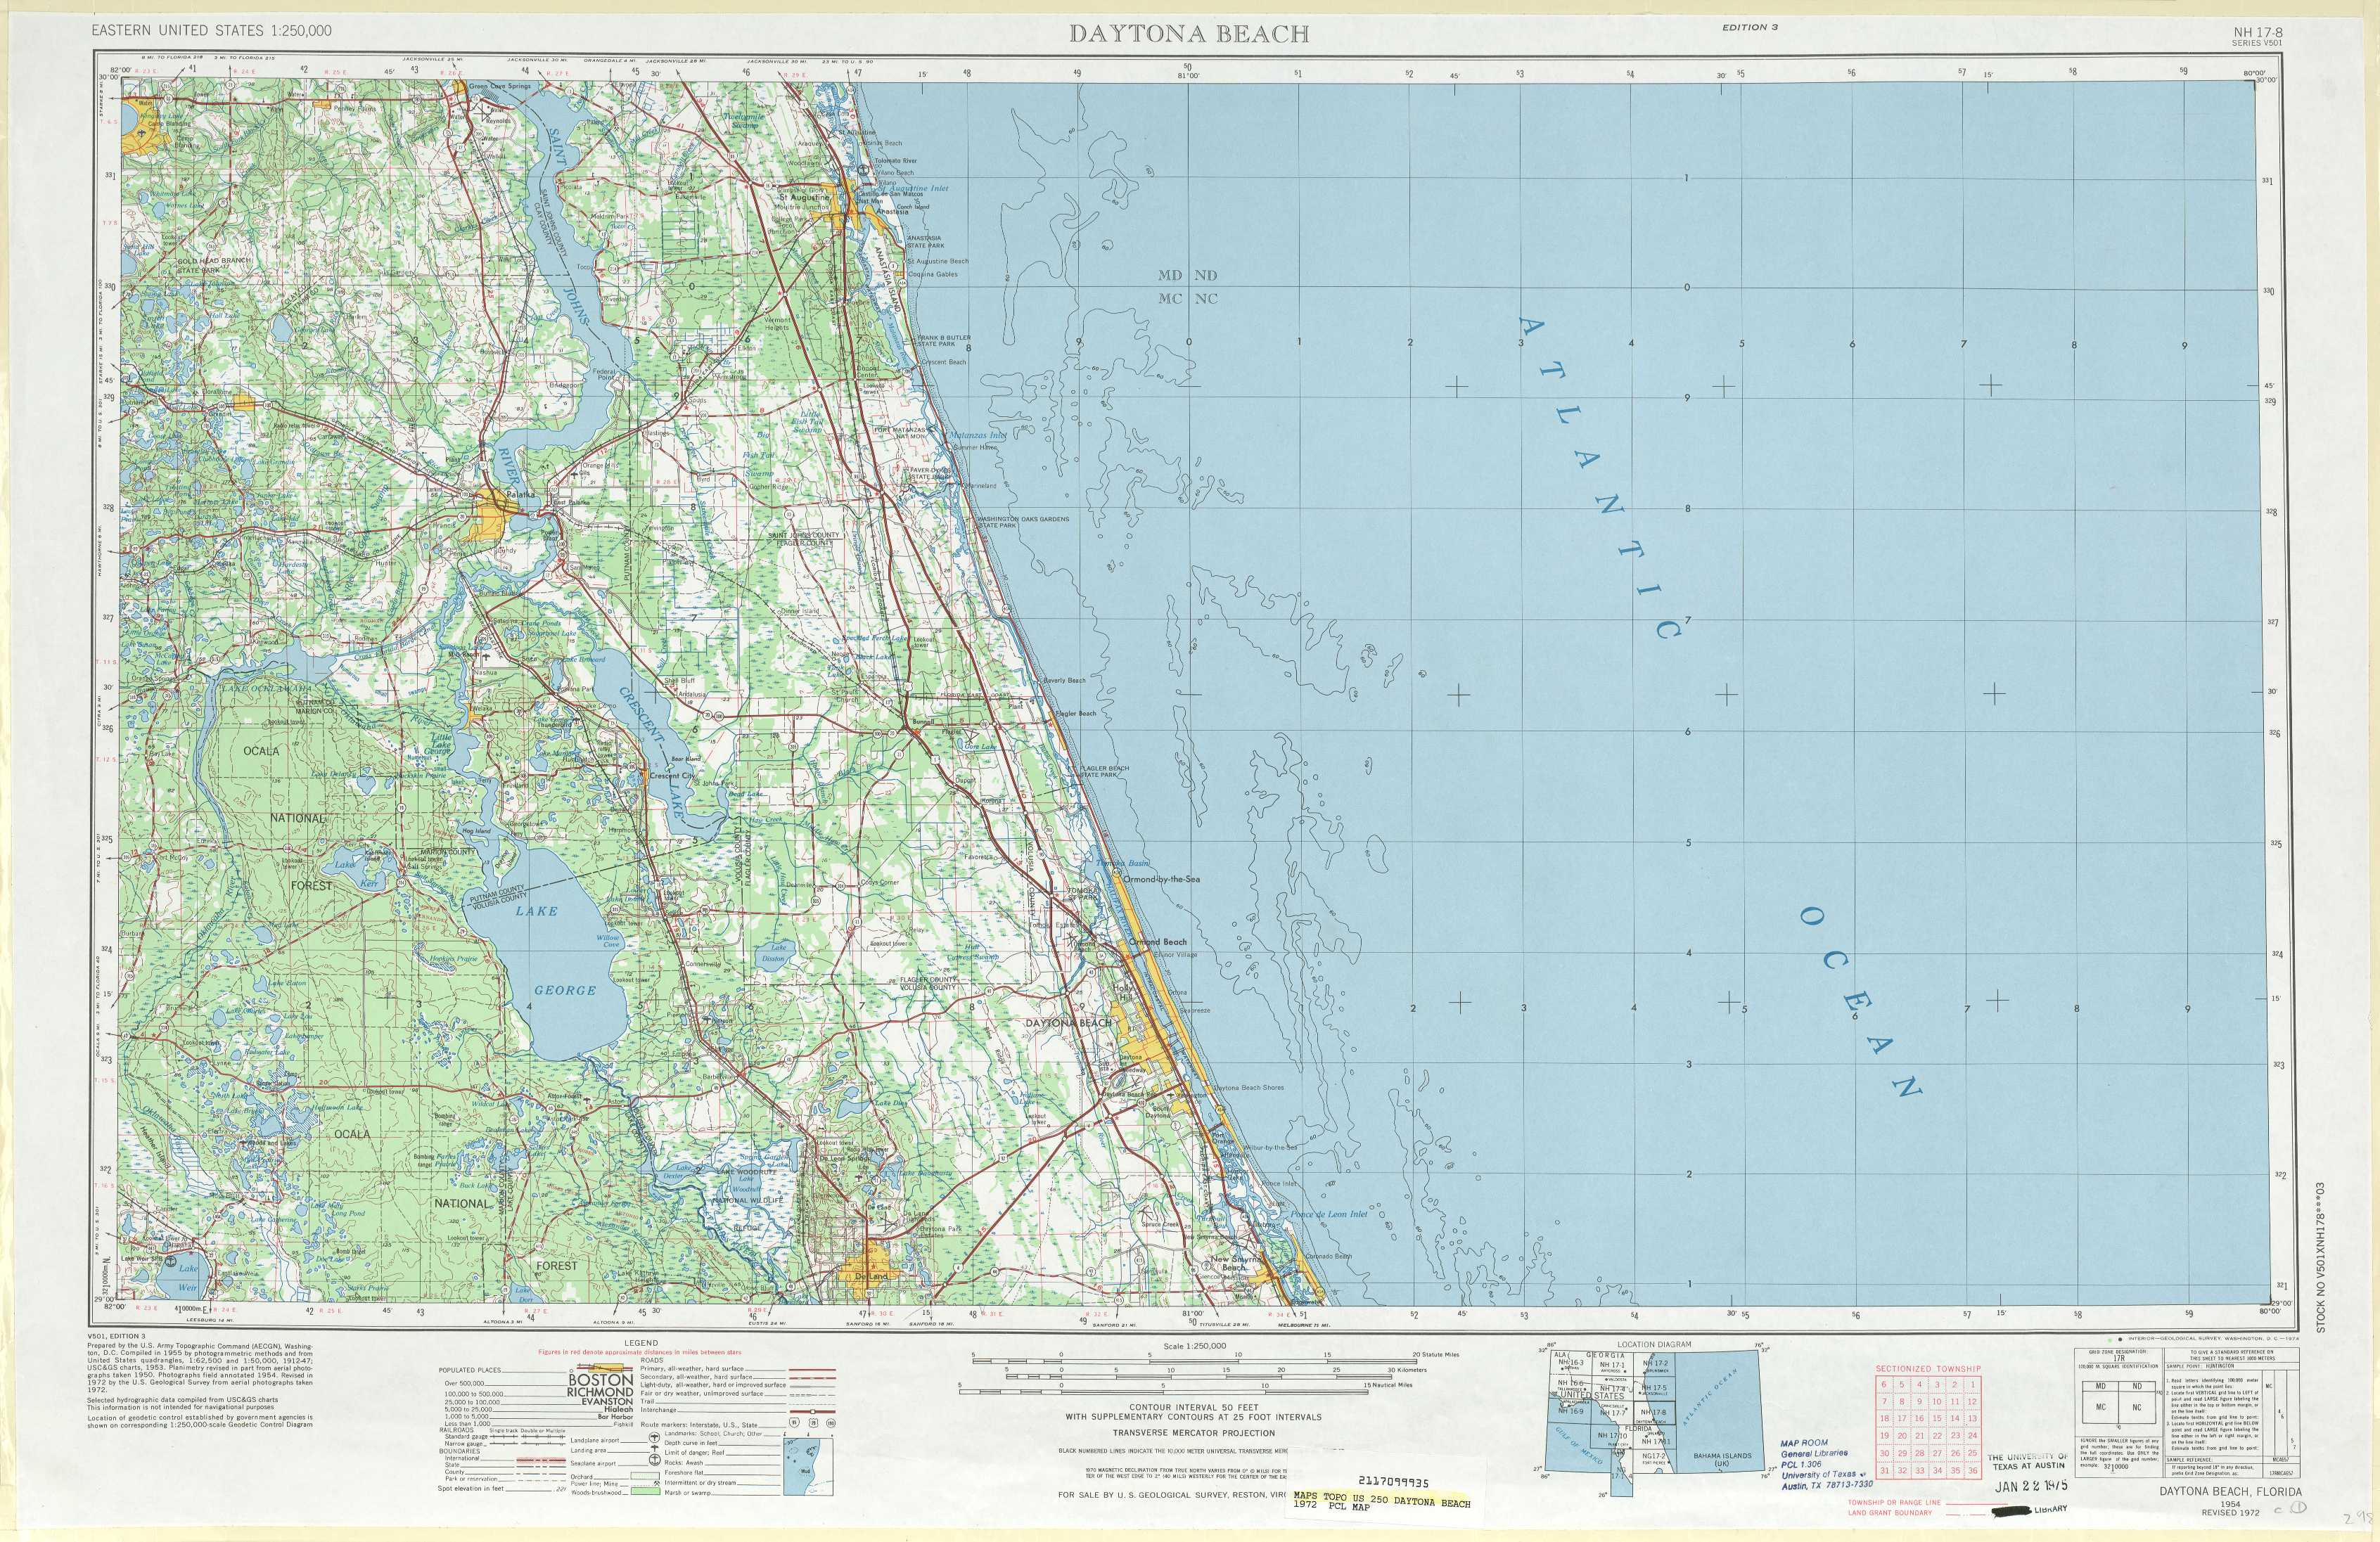 Daytona Beach topographic maps FL USGS Topo Quad 29080a1 at 1